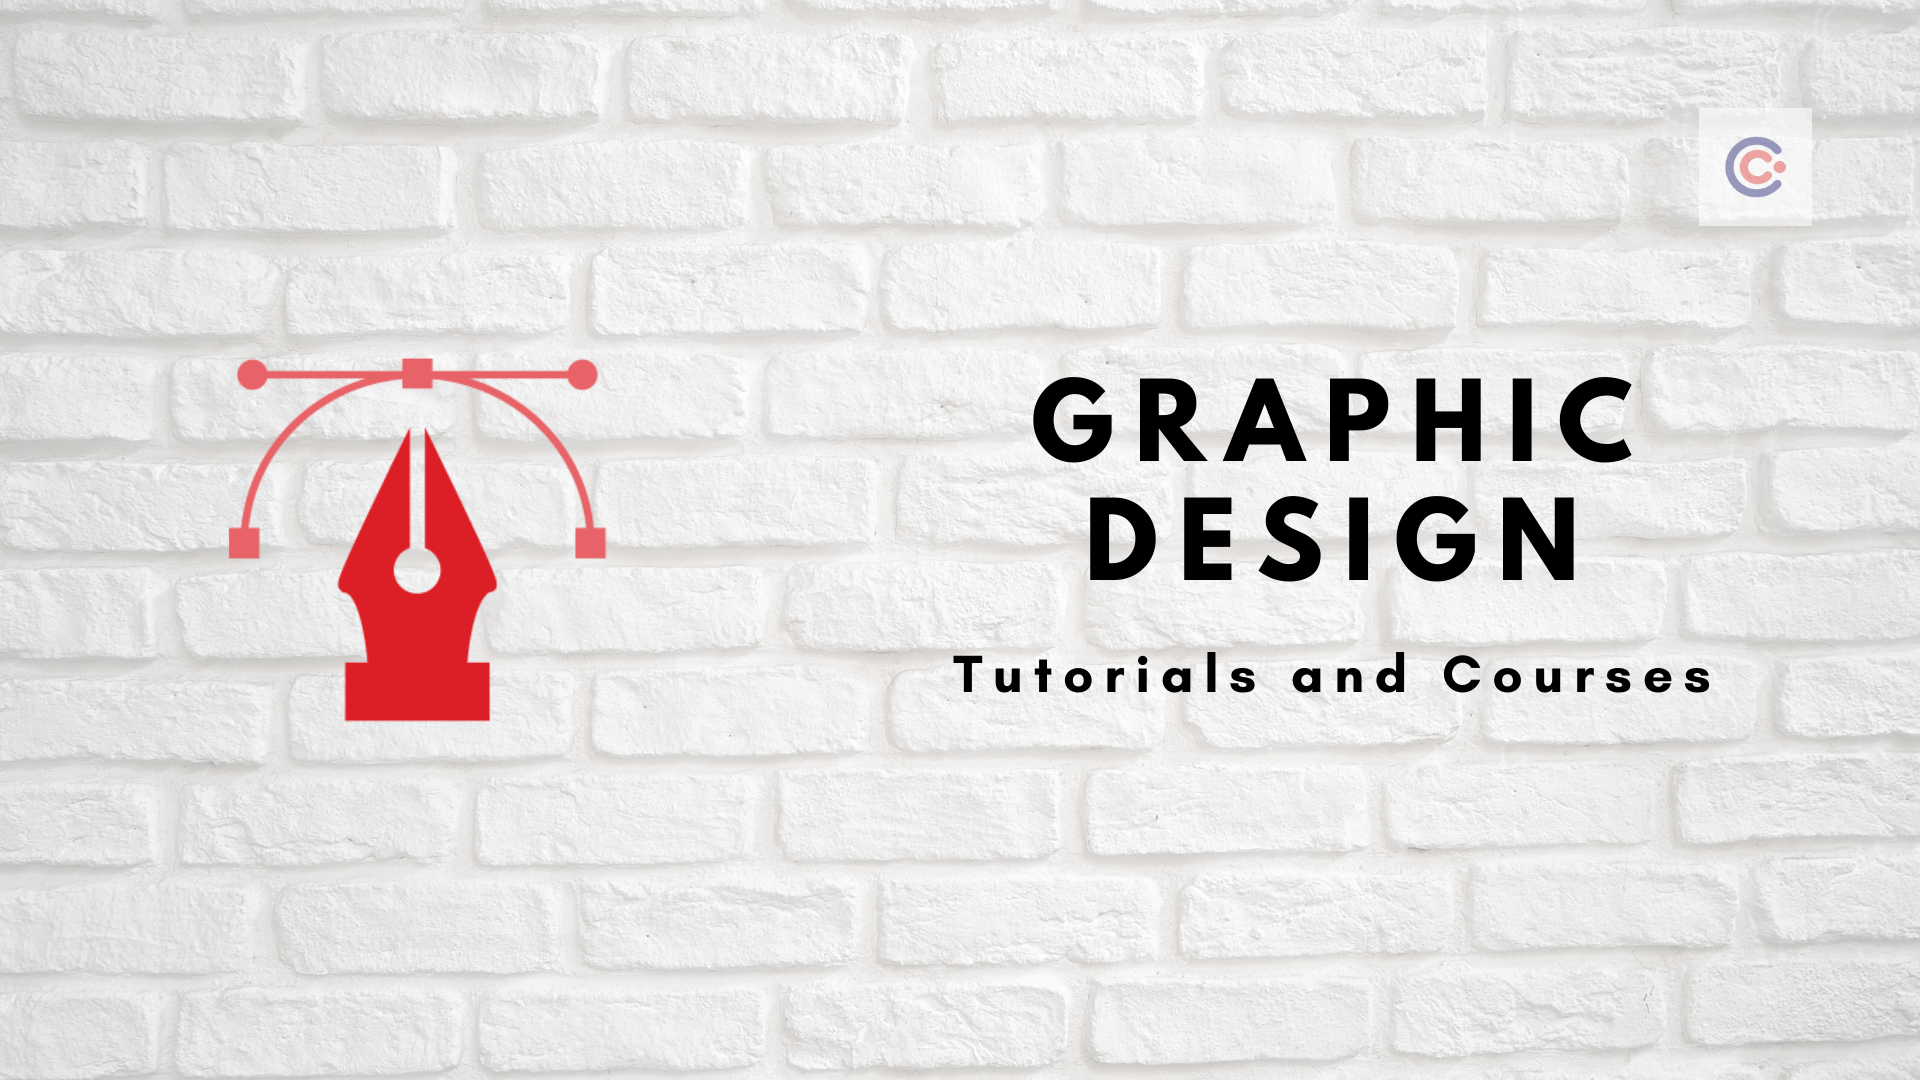 11 Best Graphic Design Tutorials & Courses - Learn Graphic Design Online